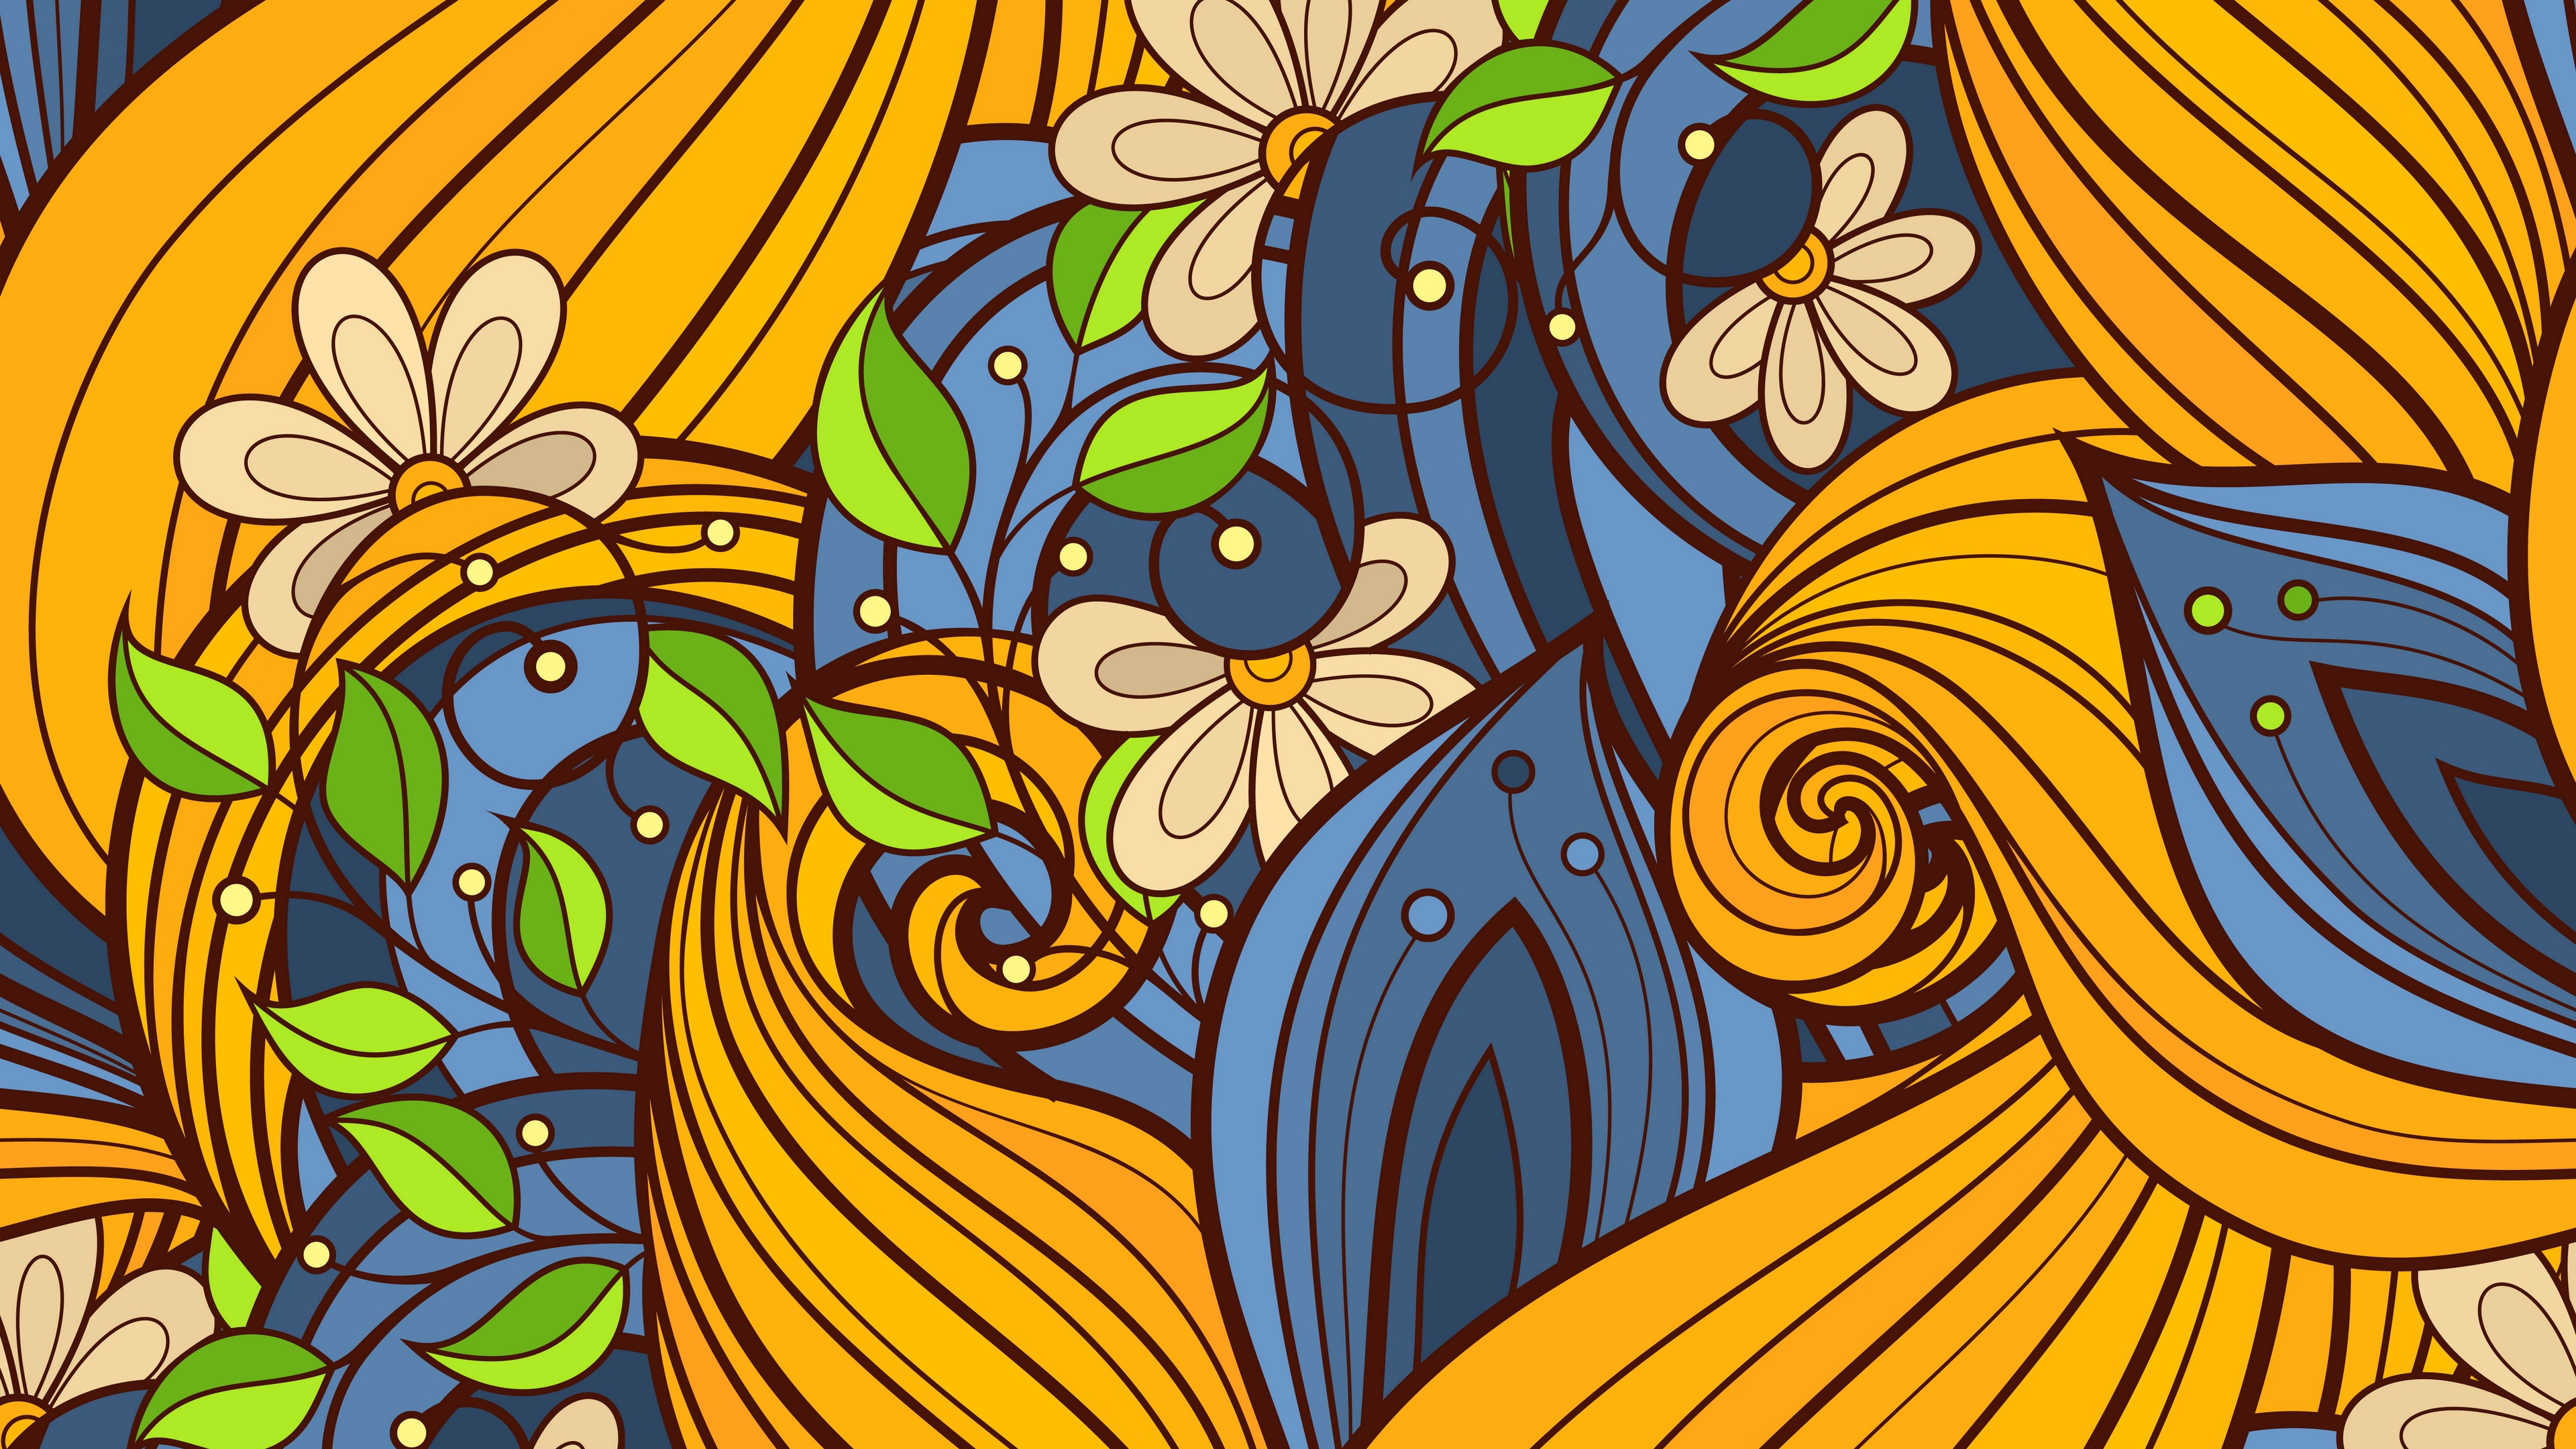 Download wallpaper 3840x2160 patterns, flowers, ornament.